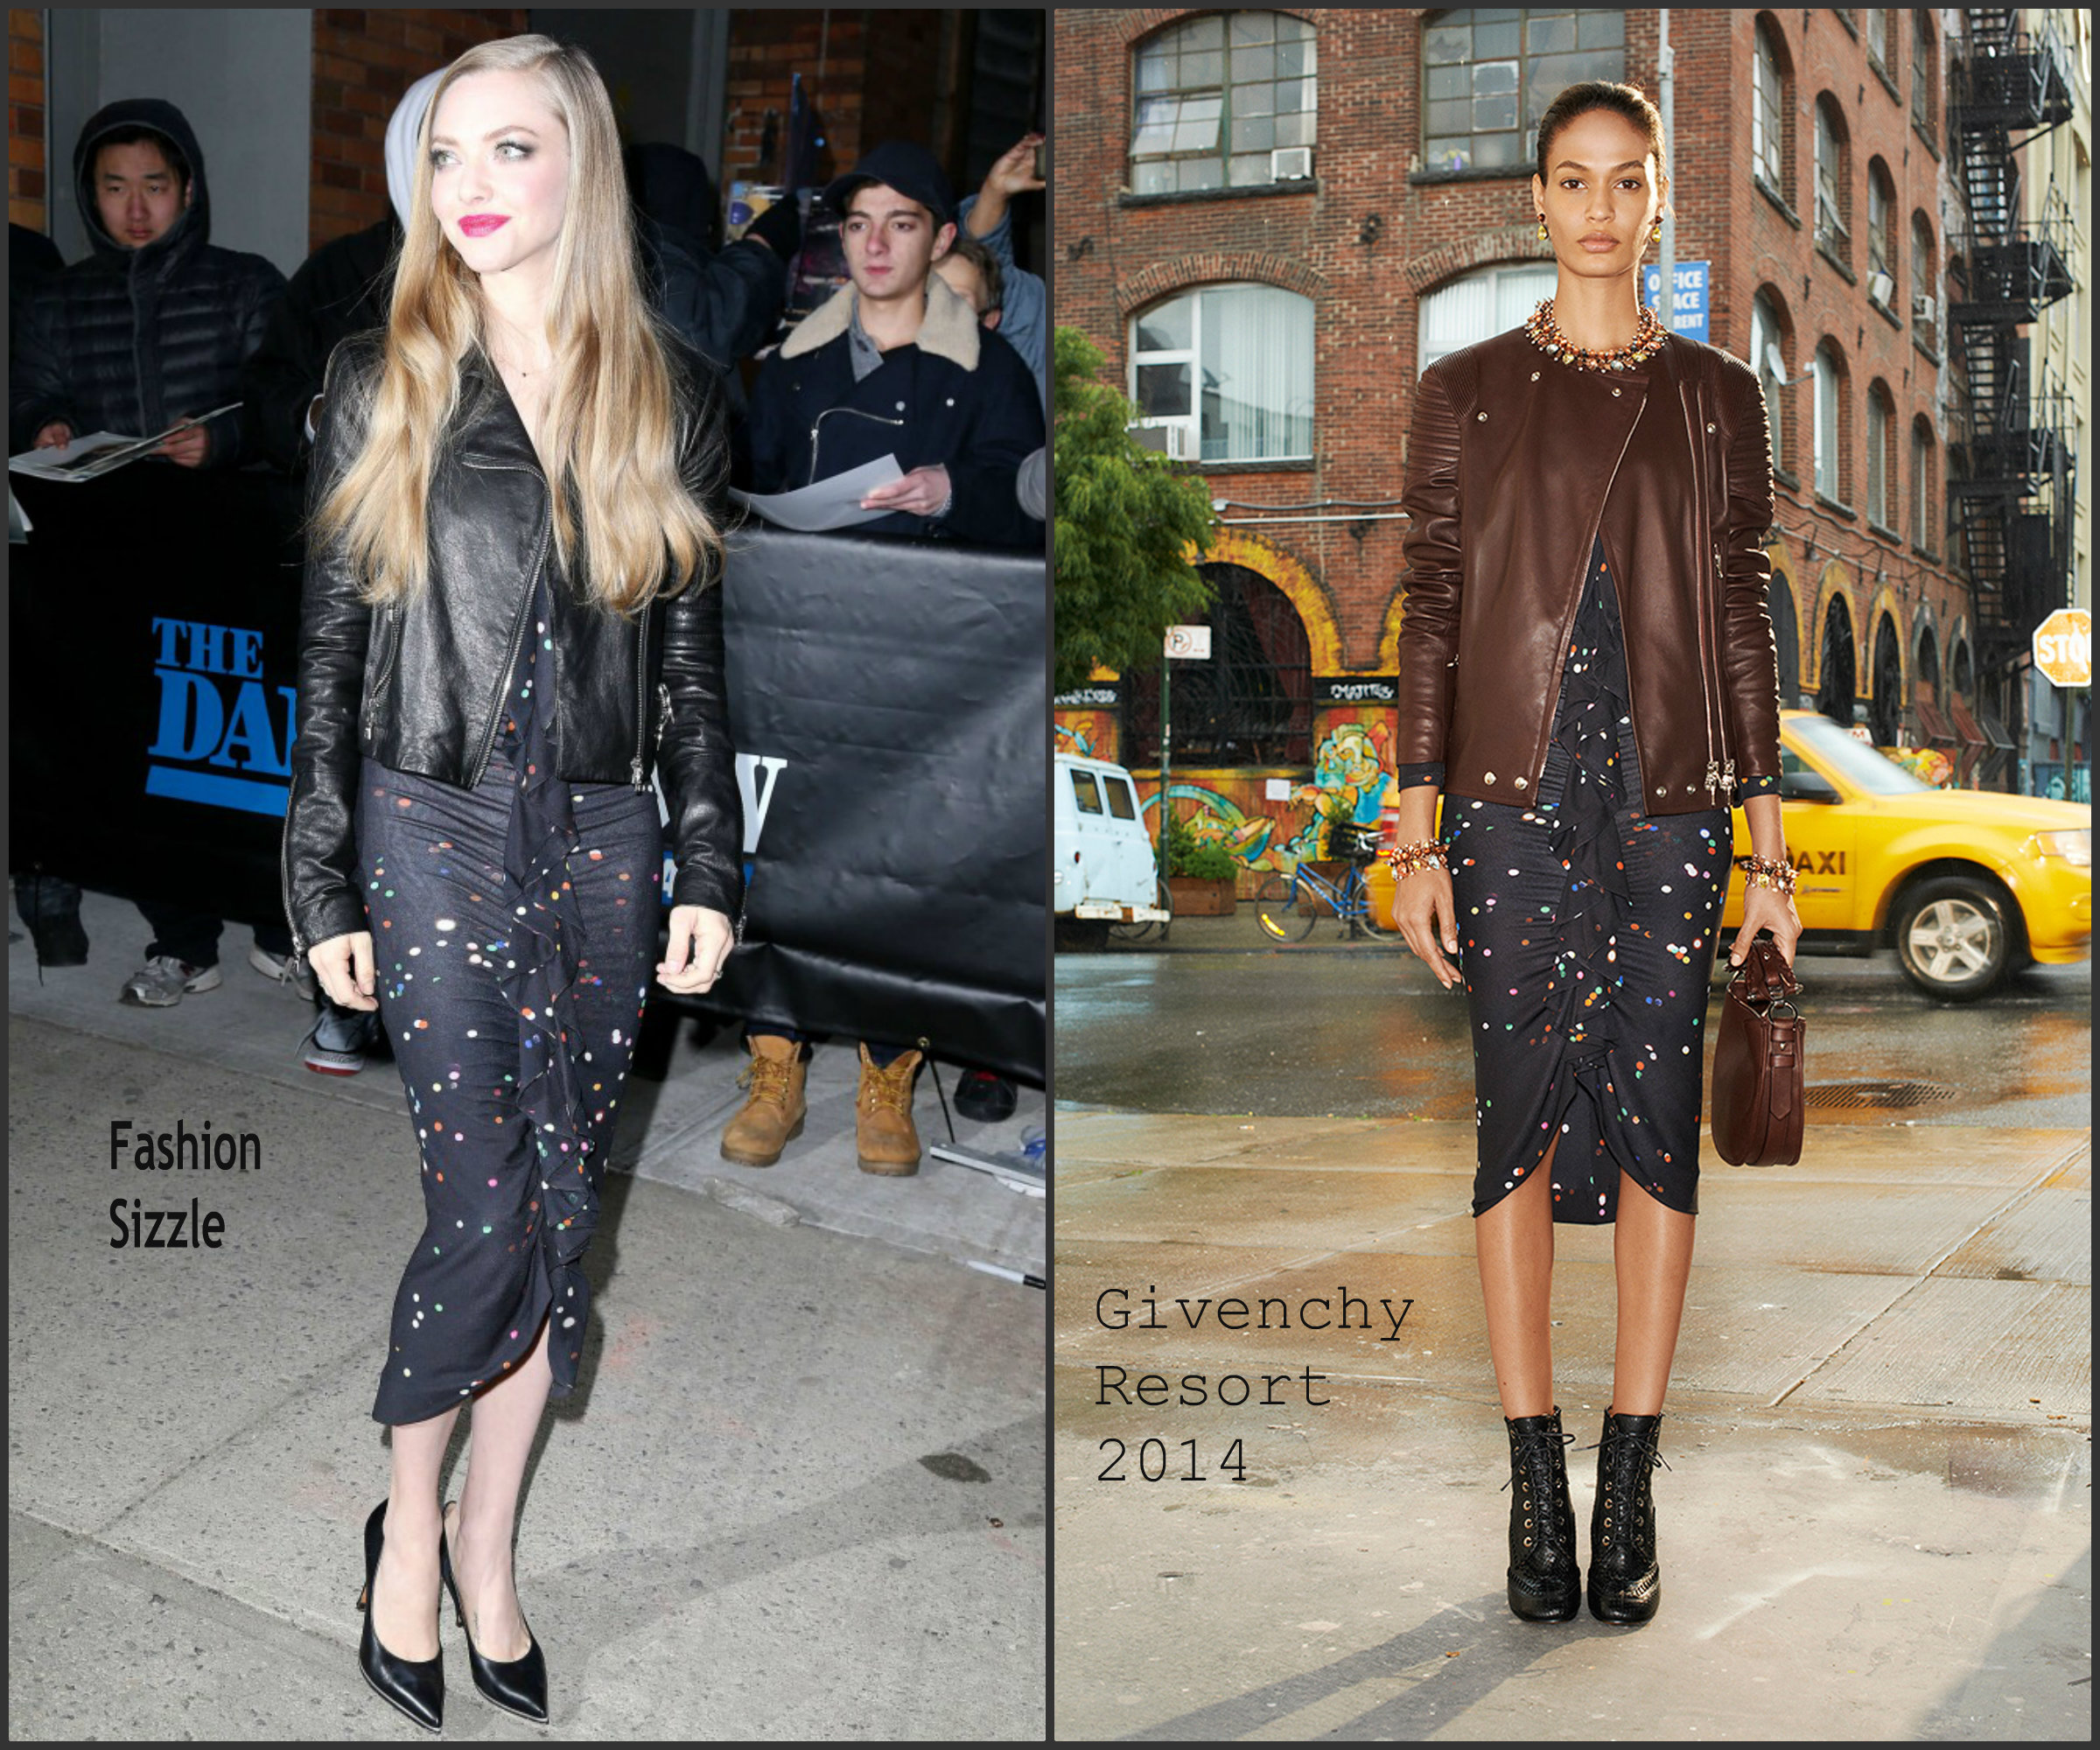 Amanda-Seyfried-In-Givenchy-&-J-Brand-The-Daily-Show-with-Jon-Stewart